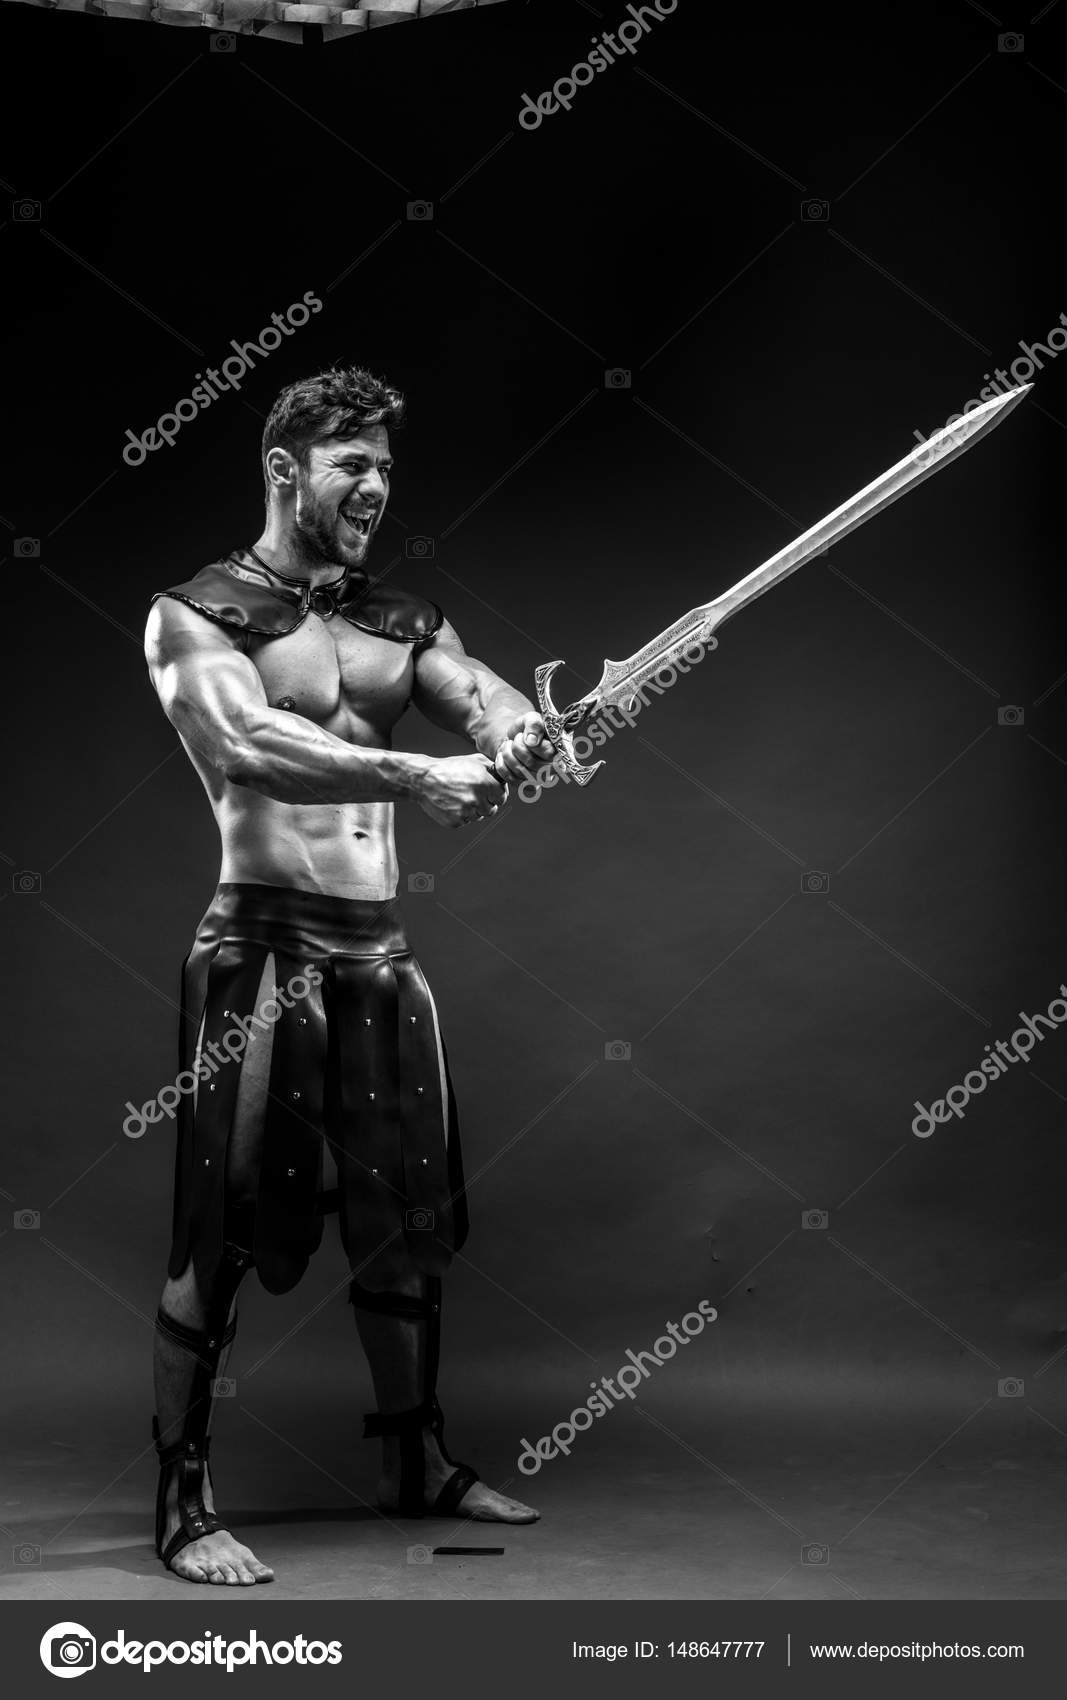 Severe barbarian in leather costume with sword u2014 Stock Photo  sc 1 st  Depositphotos & Severe barbarian in leather costume with sword u2014 Stock Photo ...